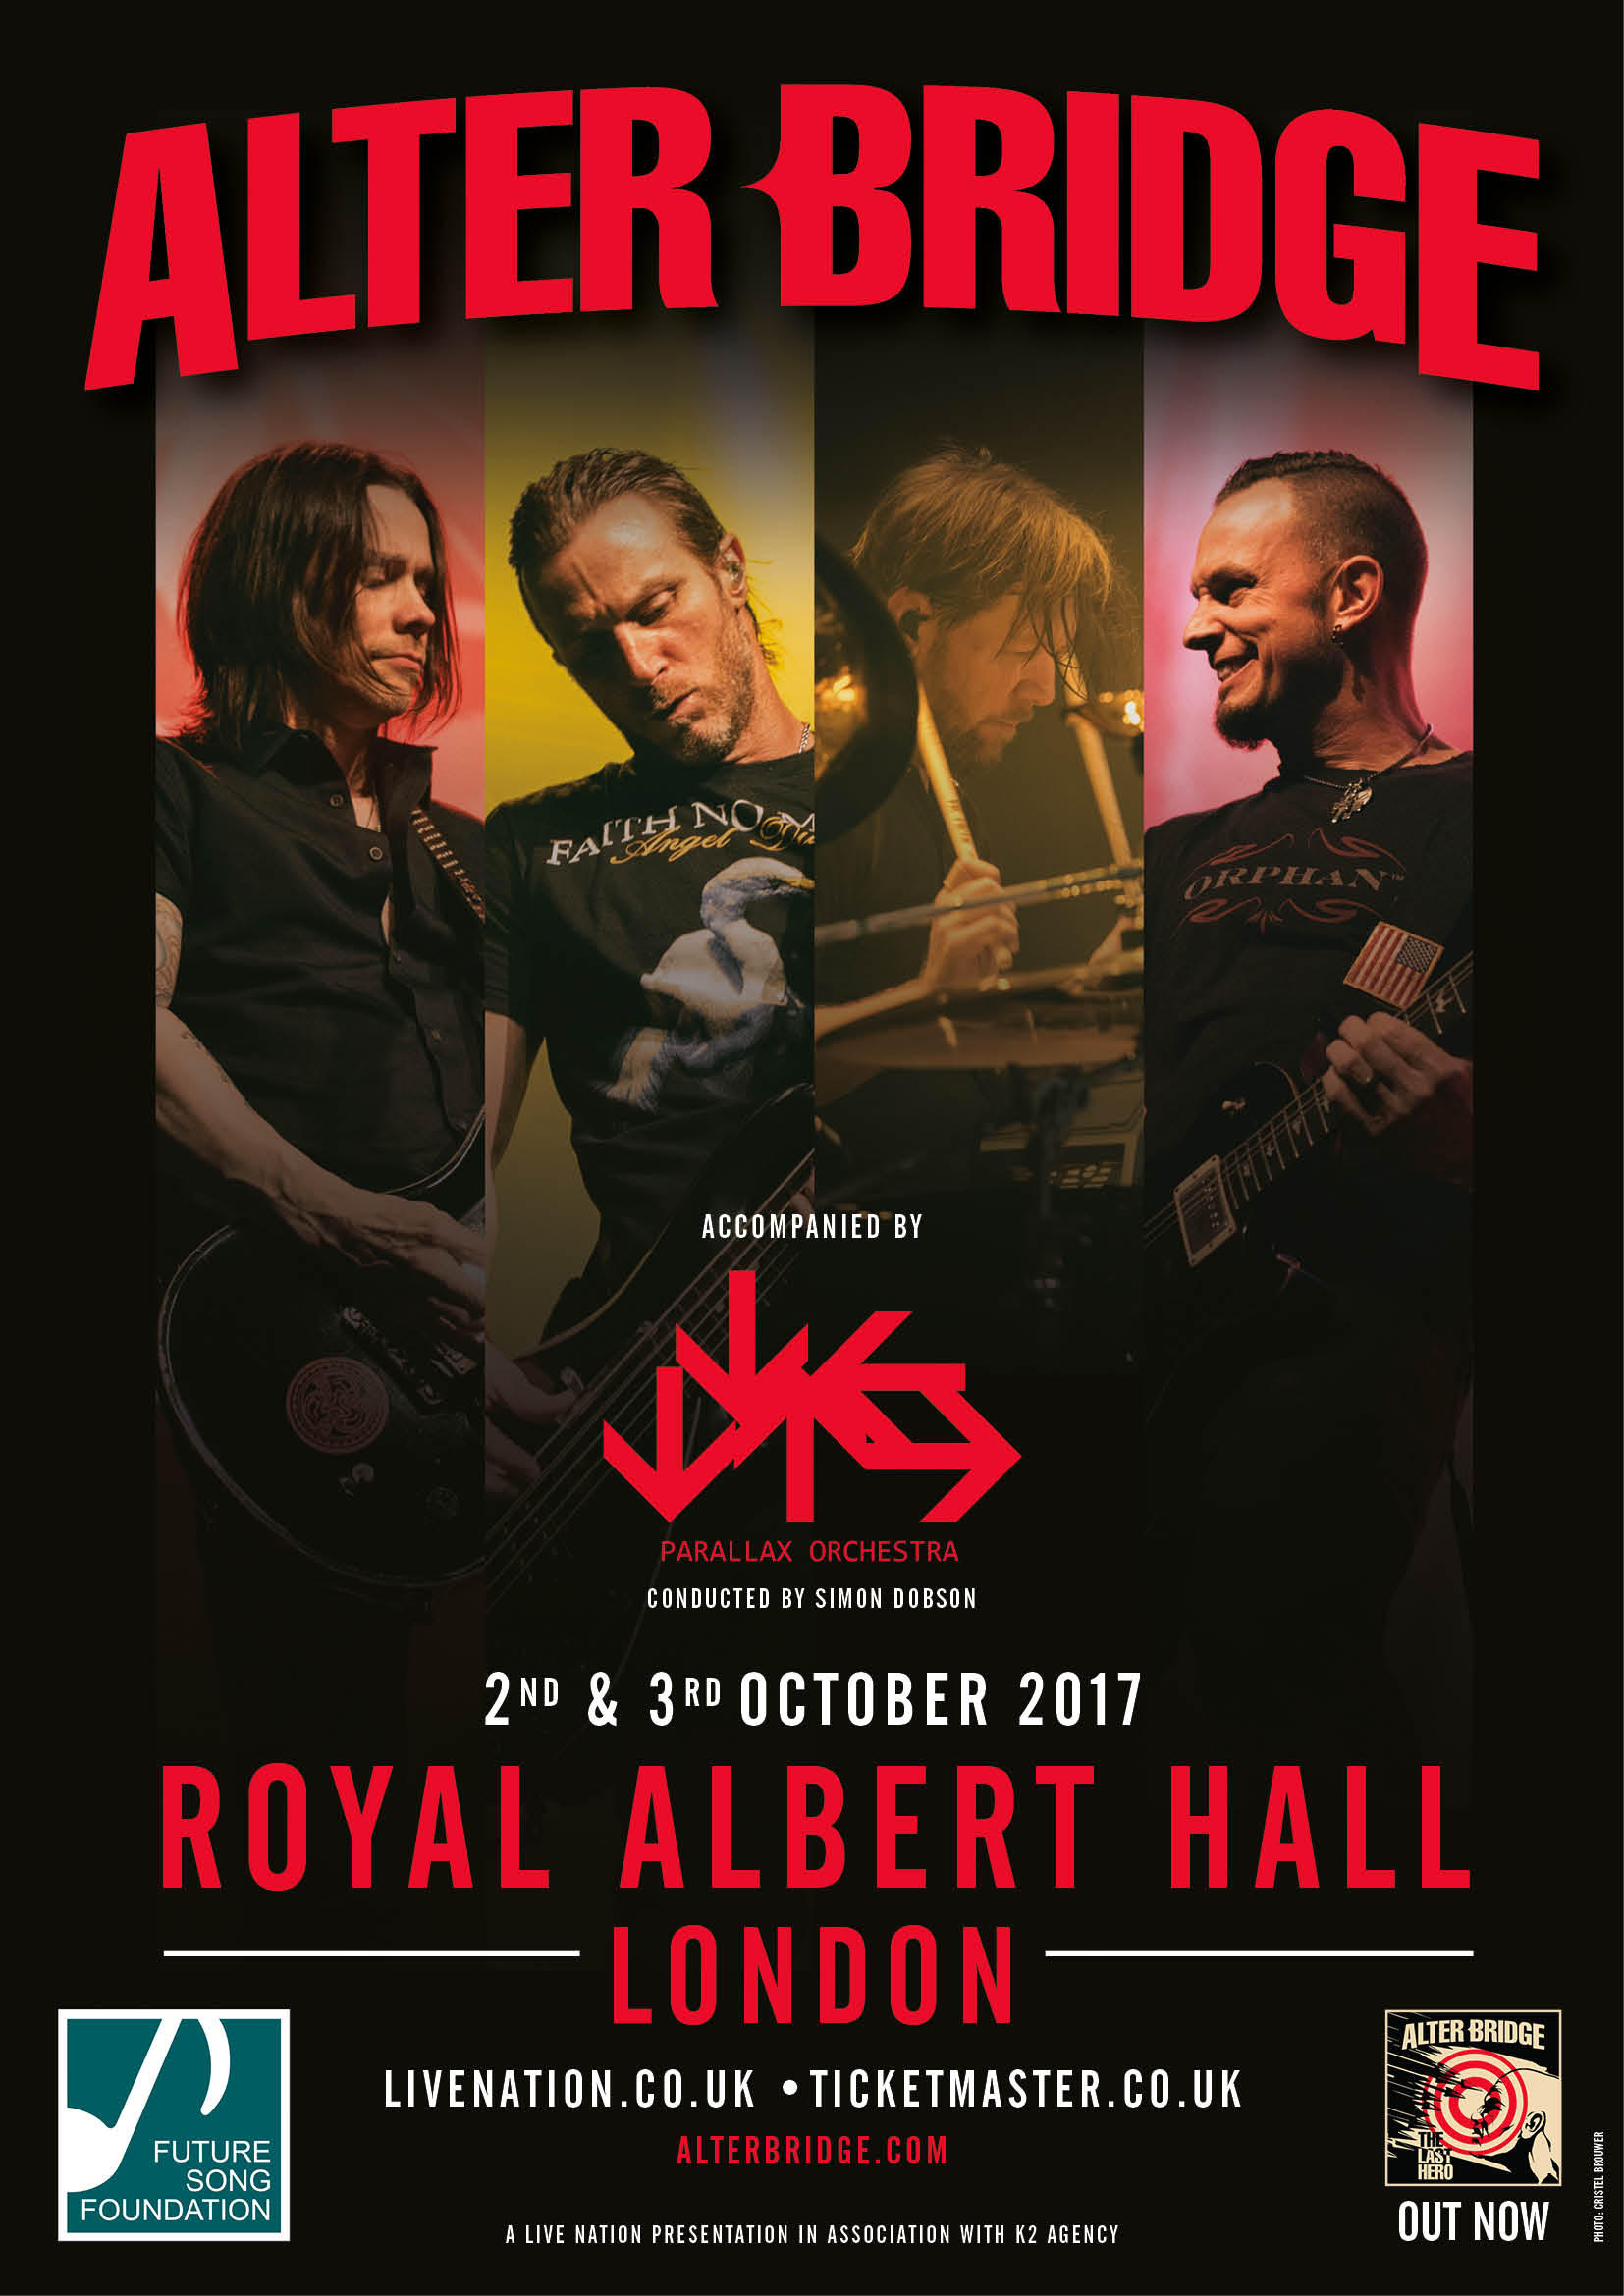 ALTER BRIDGE ANNOUNCE TWO VERY SPECIAL NIGHTS AT THE ROYAL ALBERT HALL